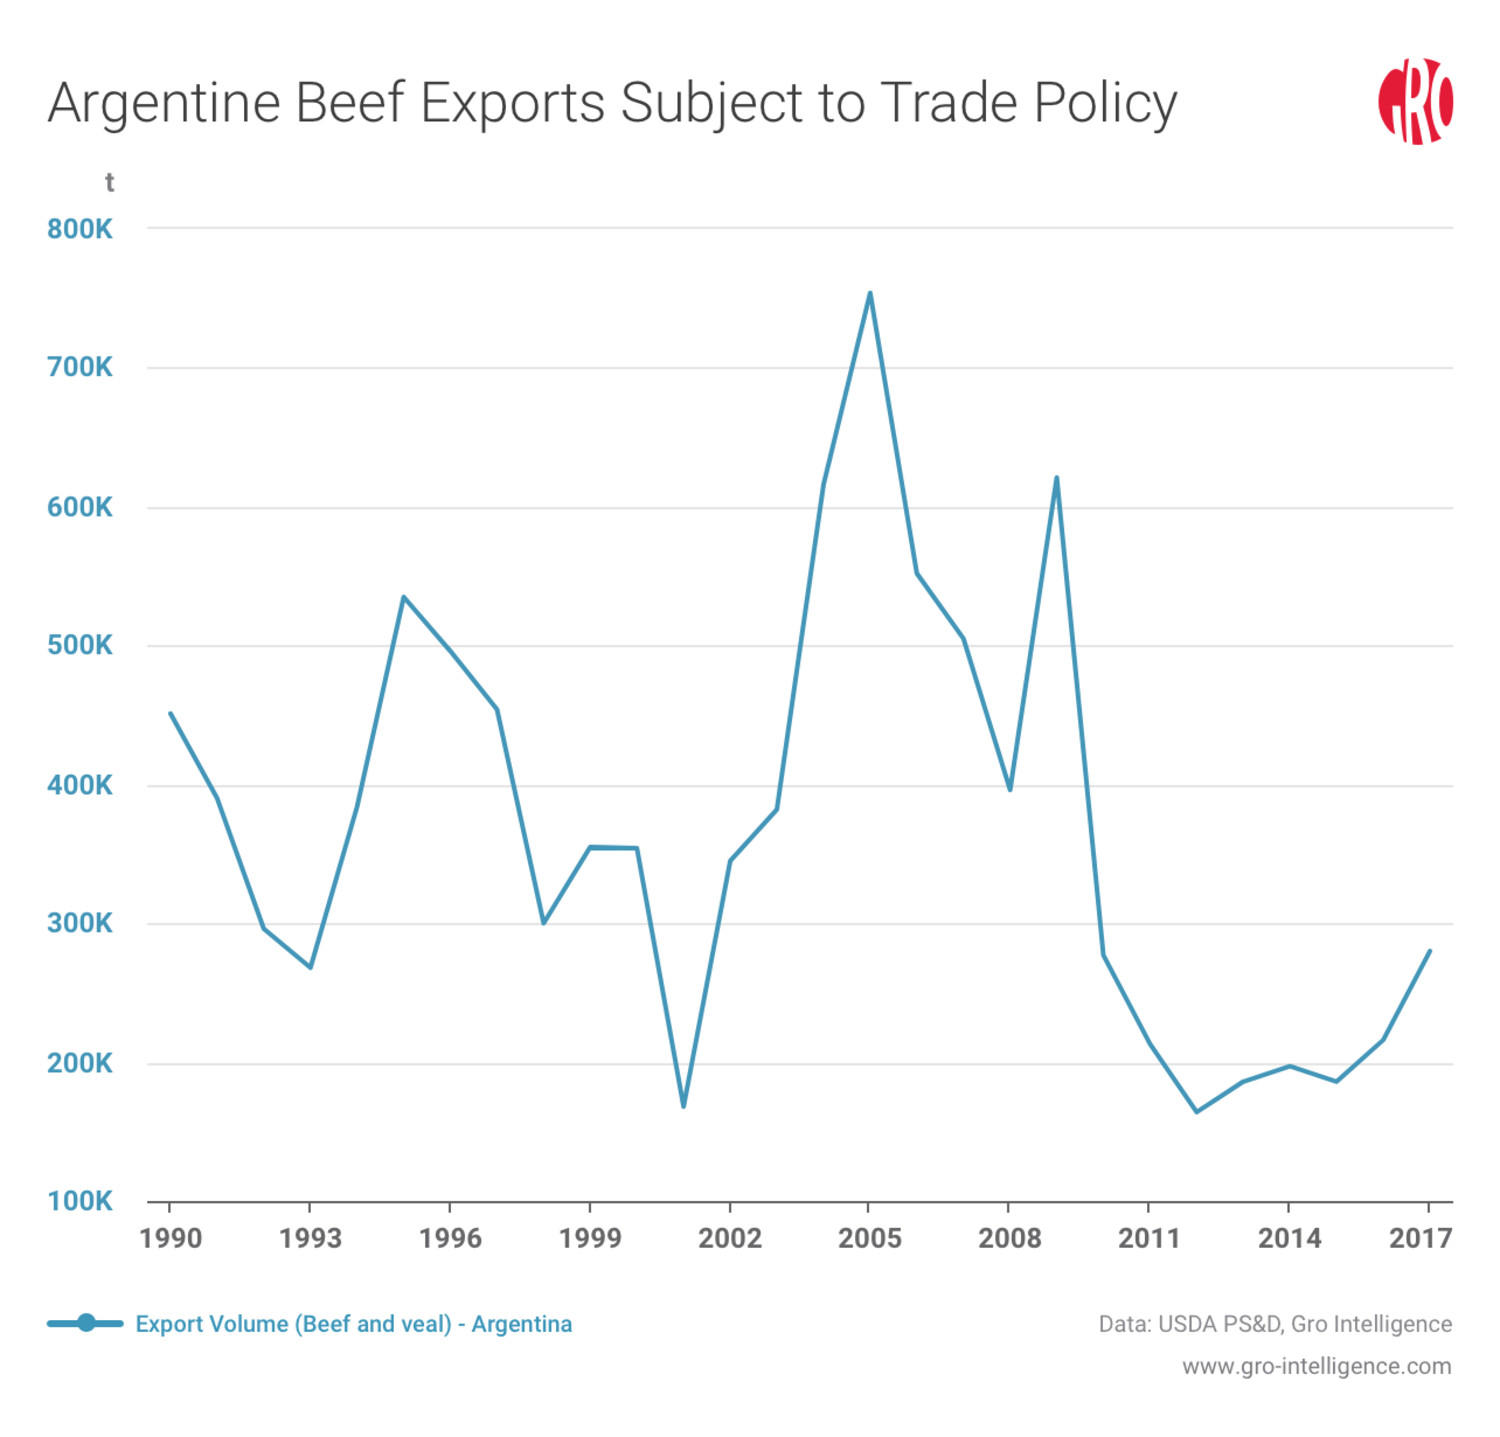 Argentine Beef Exports Subject to Trade Policy